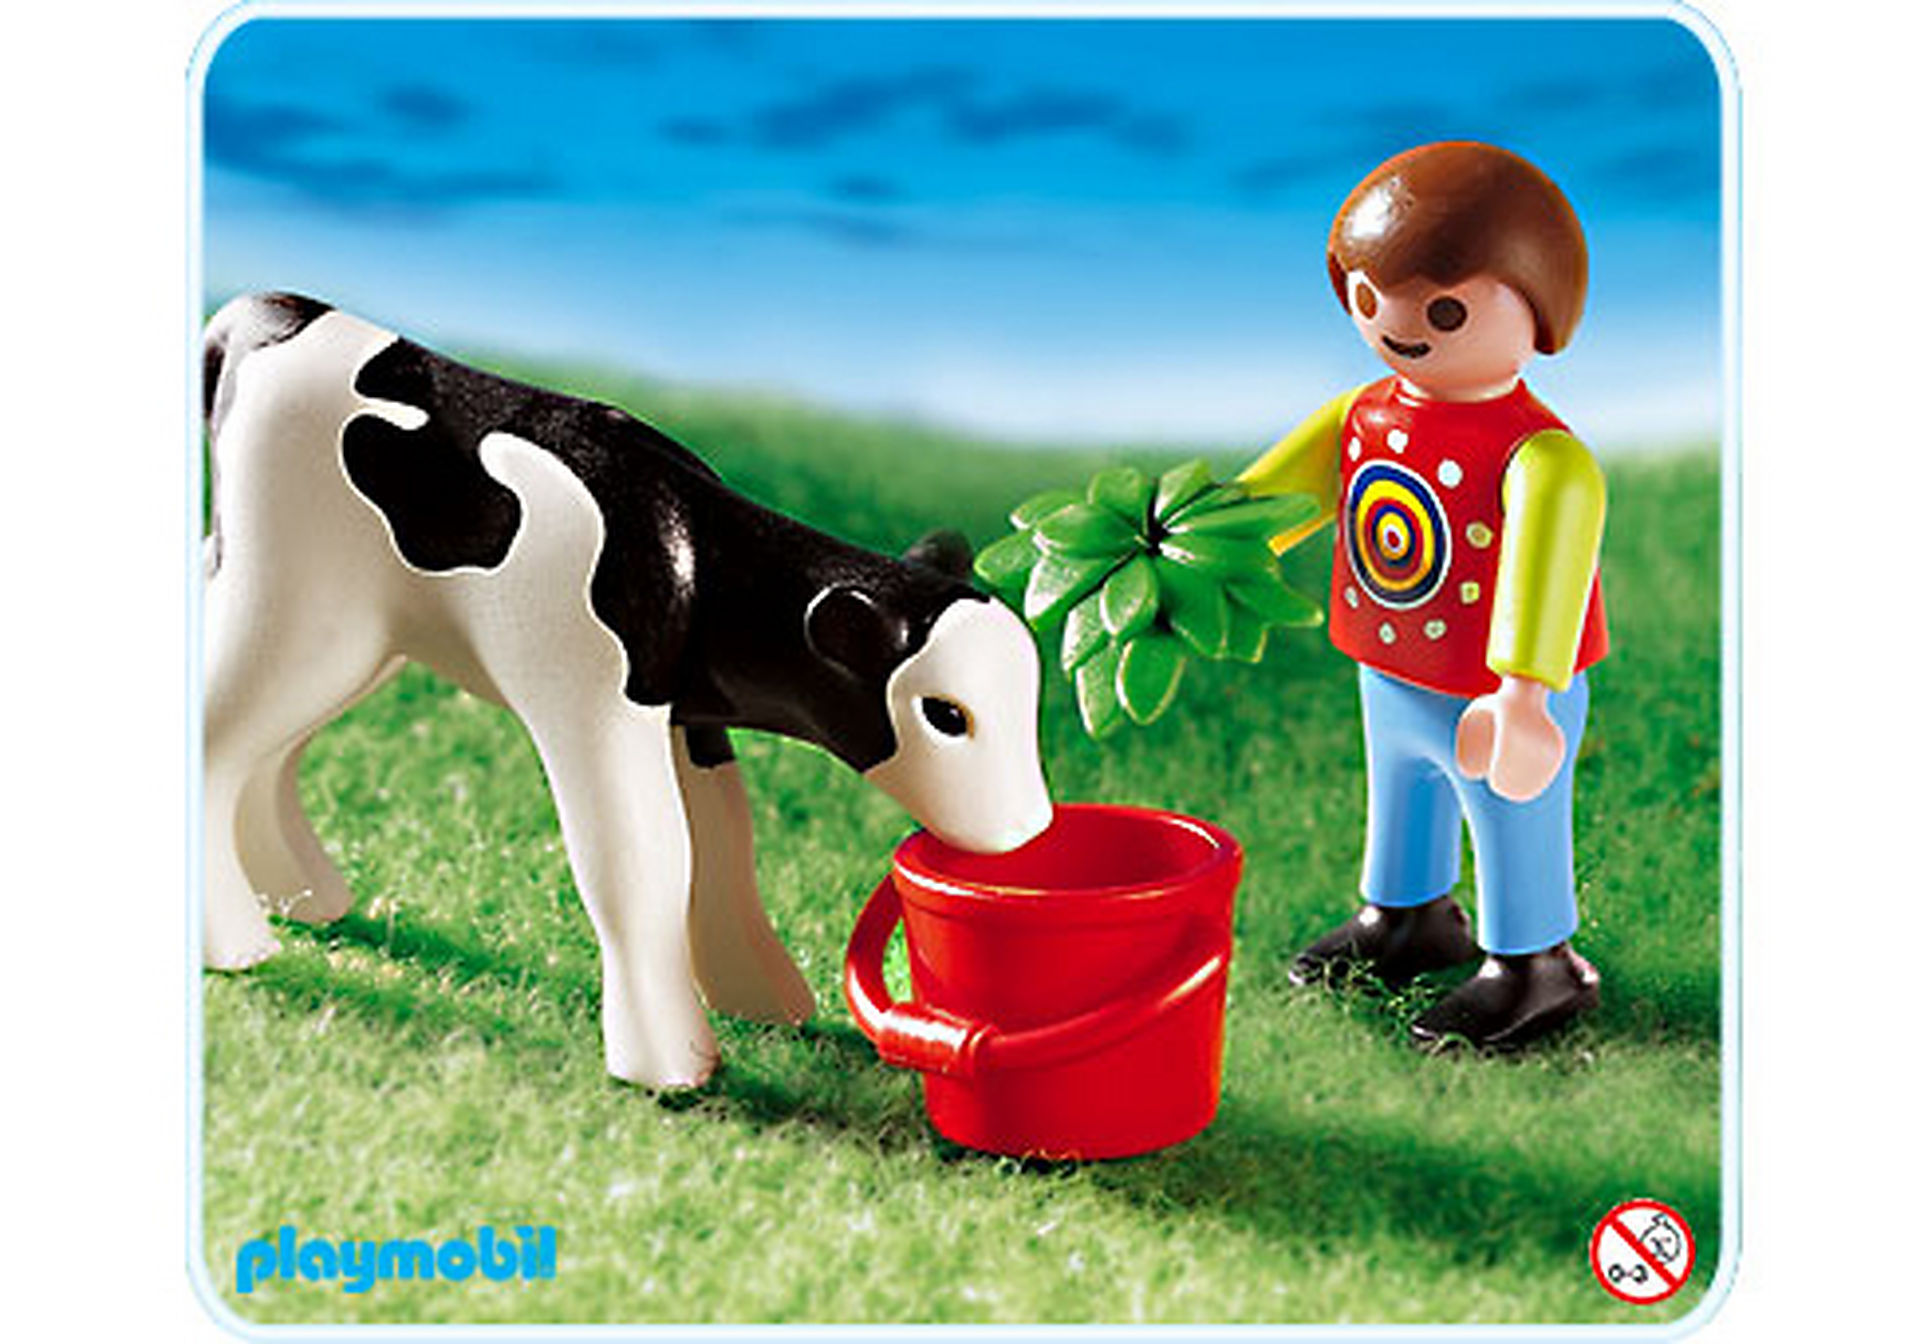 http://media.playmobil.com/i/playmobil/4624-A_product_detail/Junge mit Kälbchen